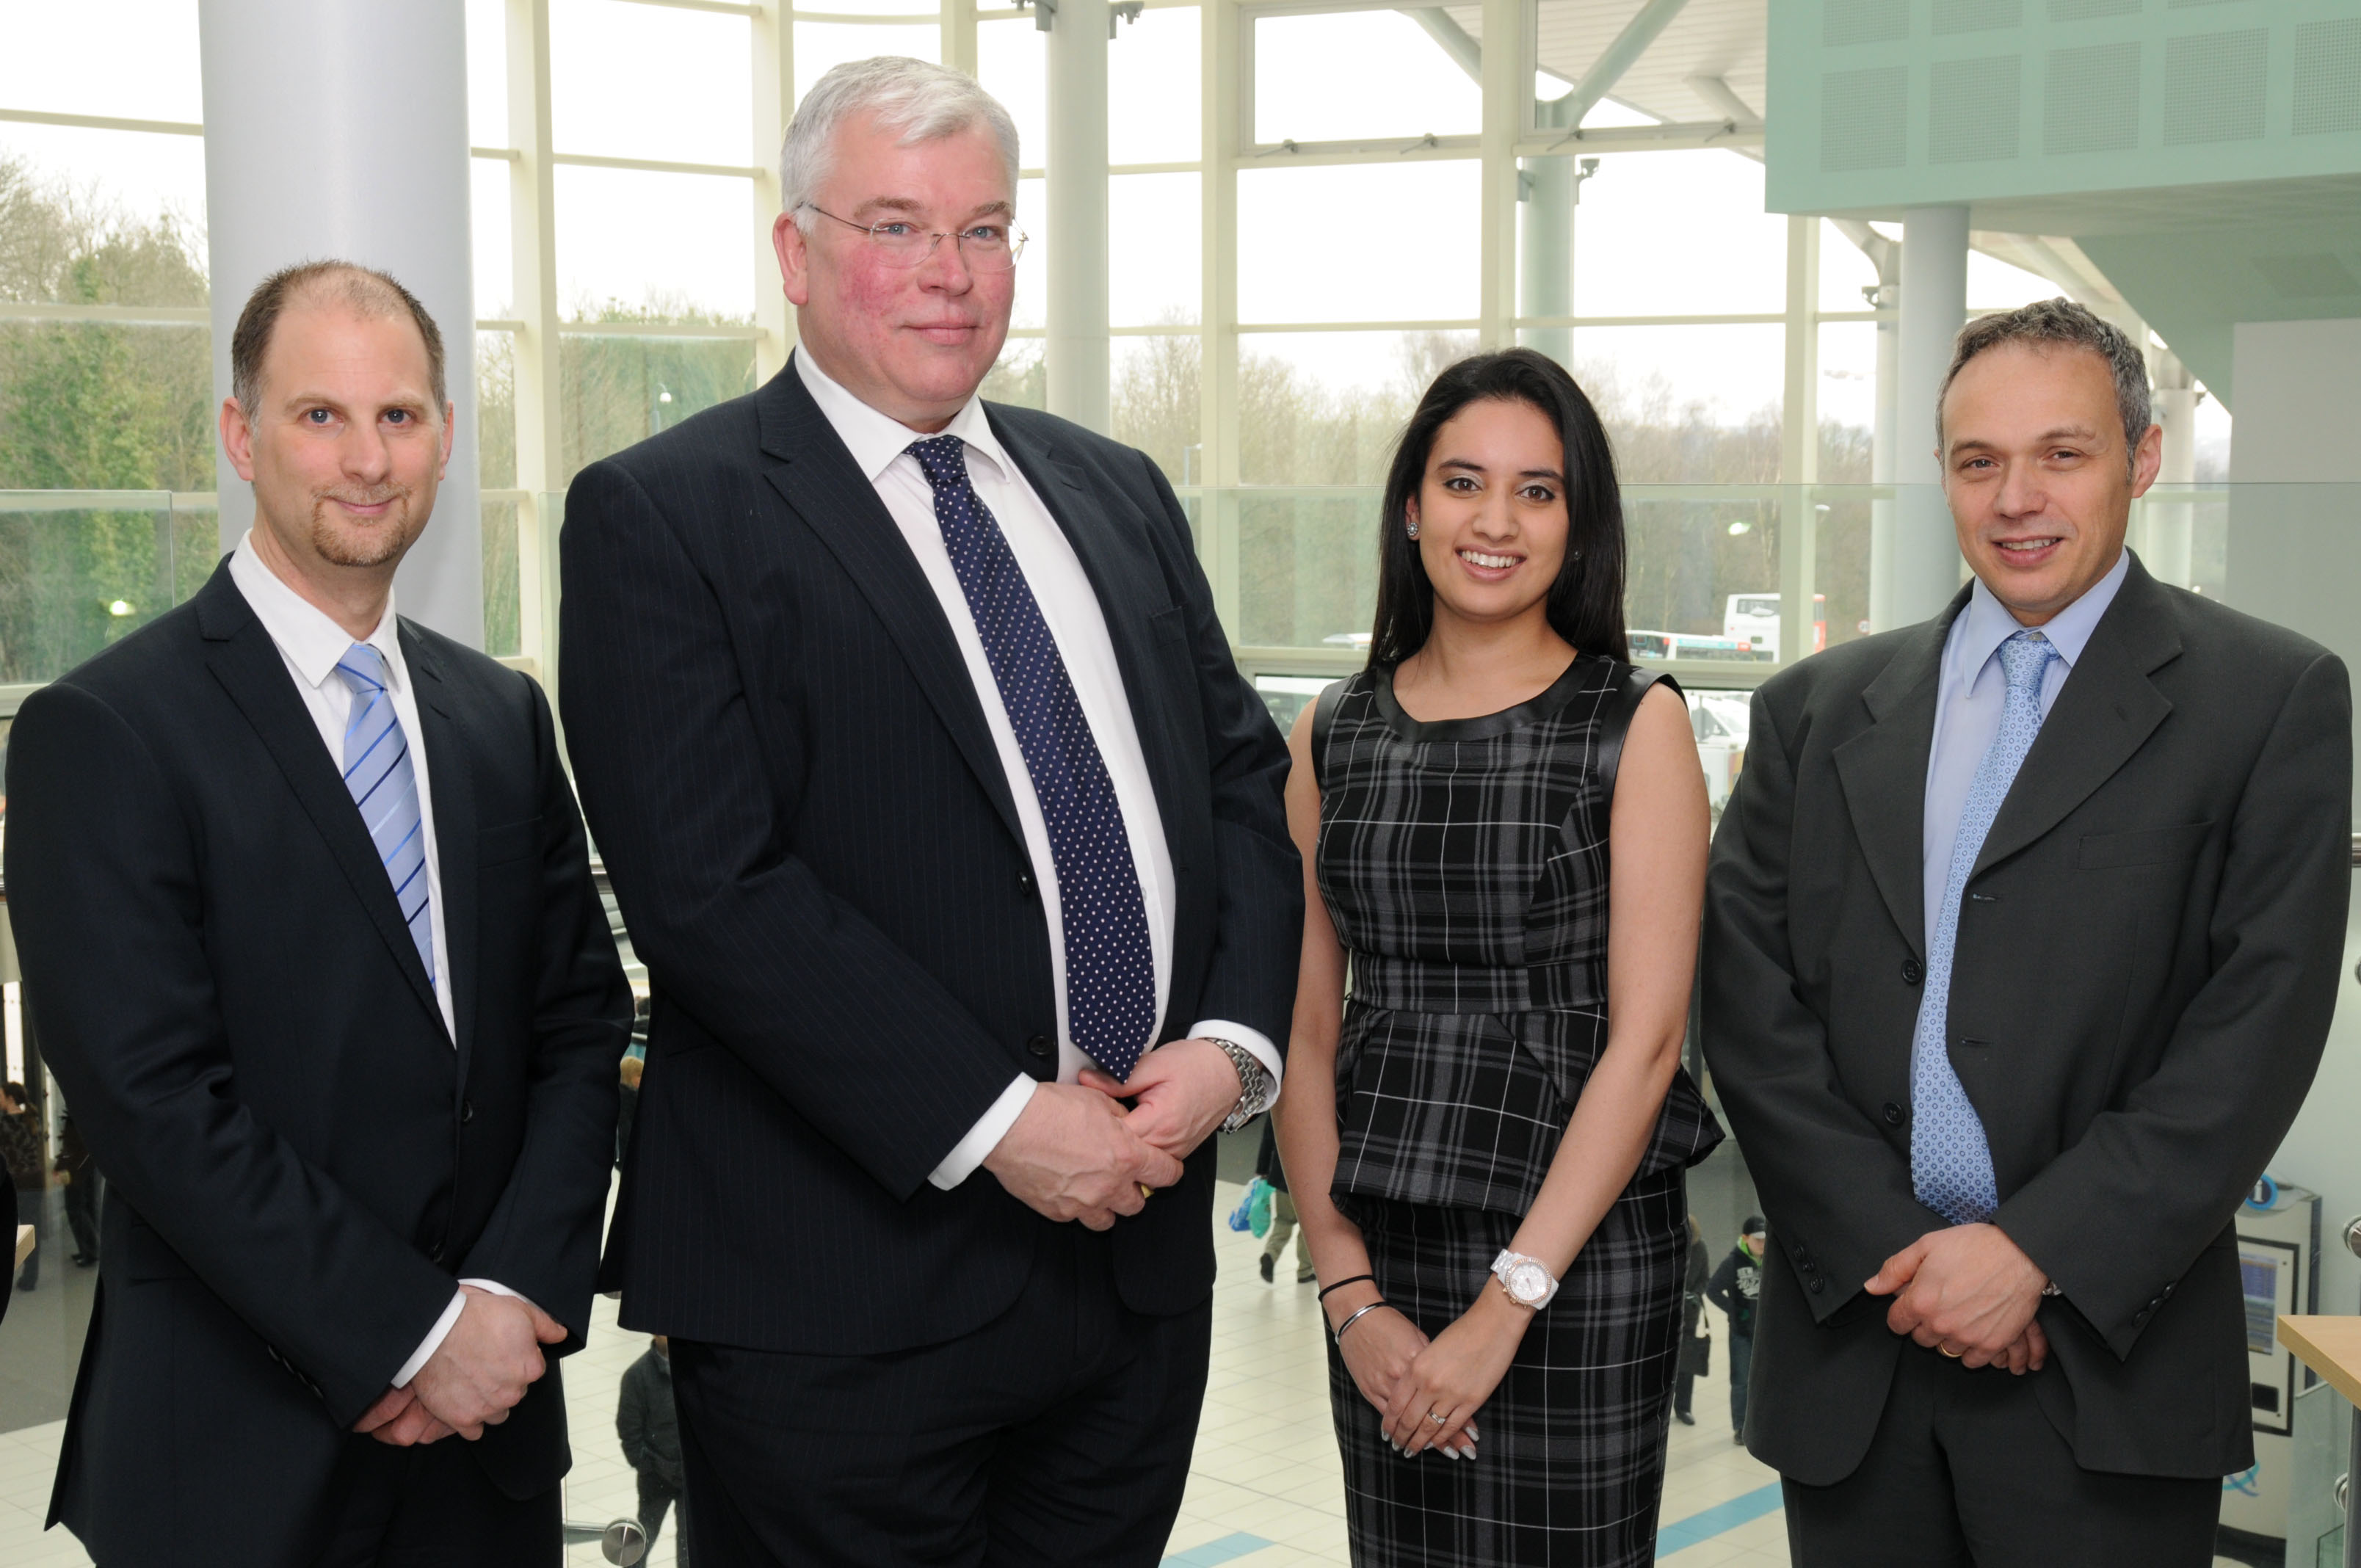 General-72964-NIHR QEHB UHB Trauma Management HTC launch Conference organisers Dr Michael Gray Tom Clutton brock Daljeet Bansal Mr Tony Belli